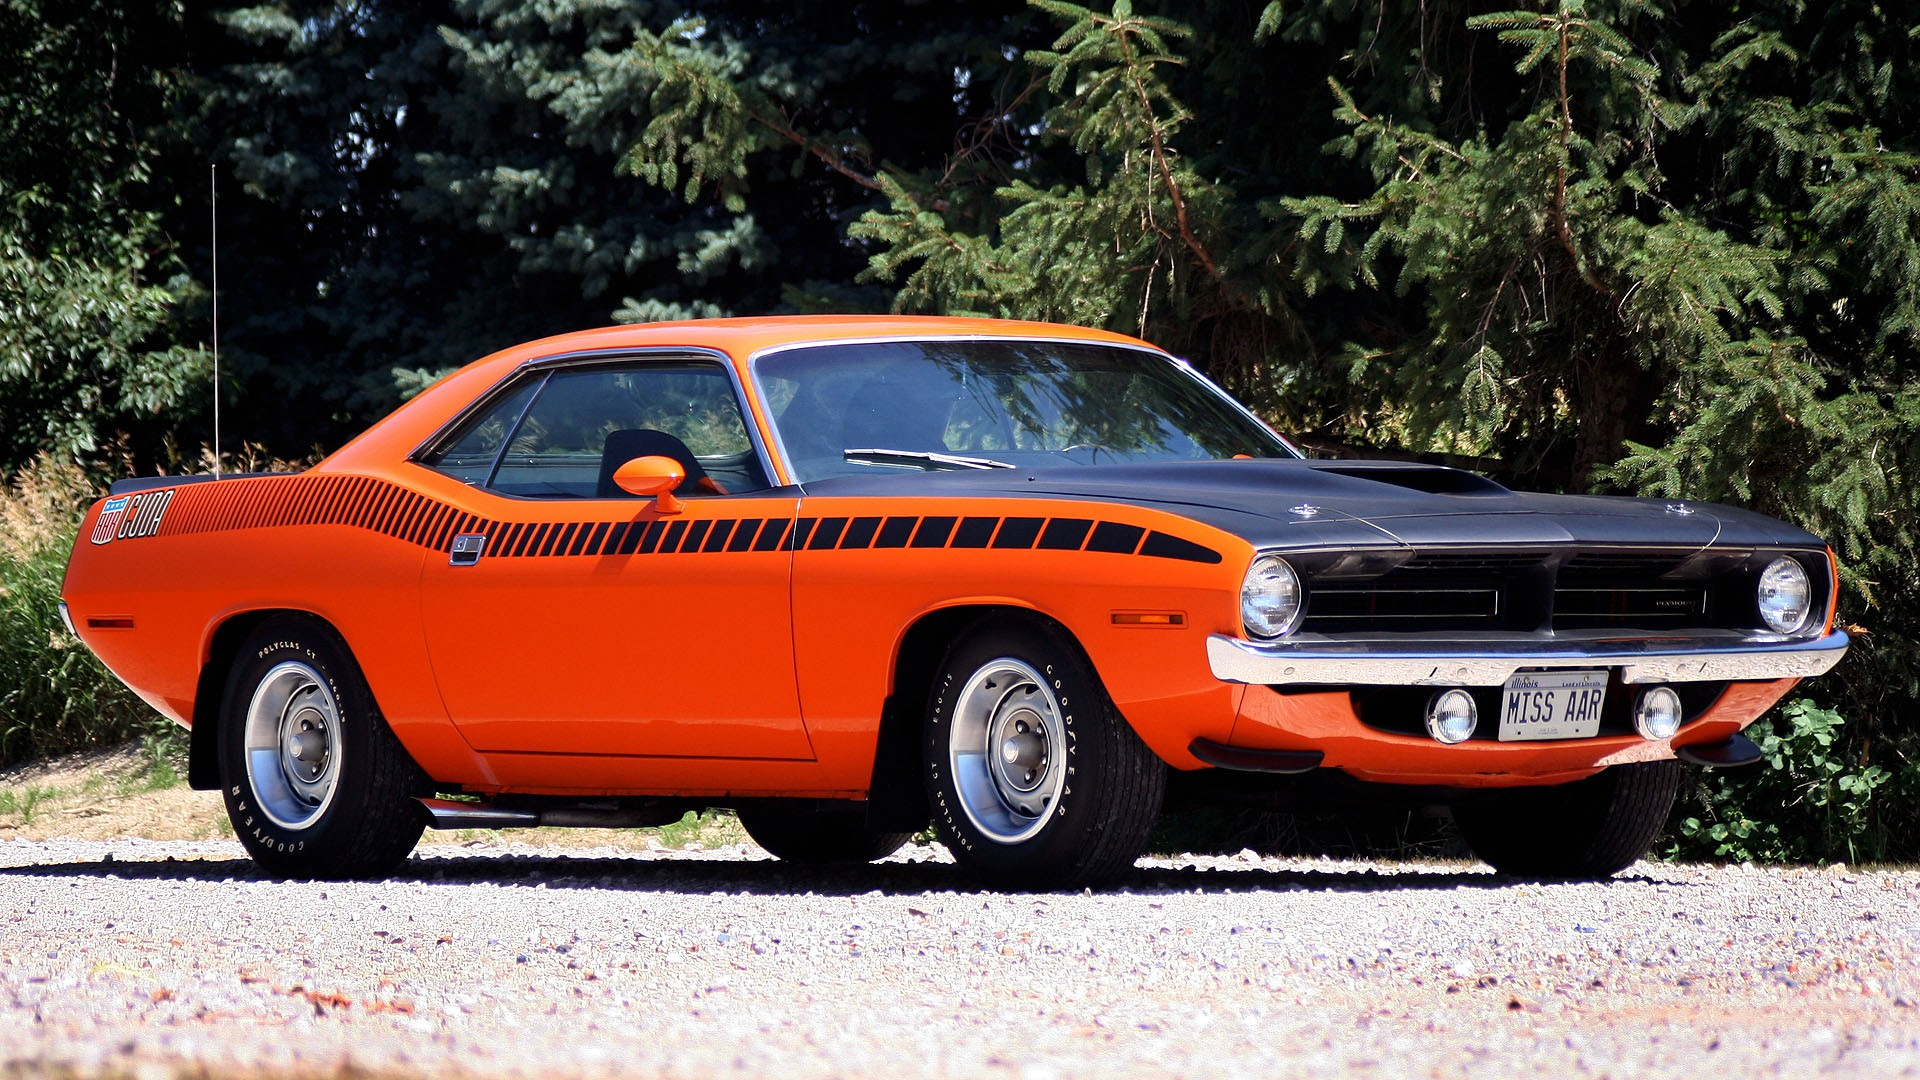 Muscle Cars Plymouth Barracuda Widescreen Cuda Wallpaper 1920x1080 1966 Dodge Dart Wiring Diagram 227554 Wallpaperup